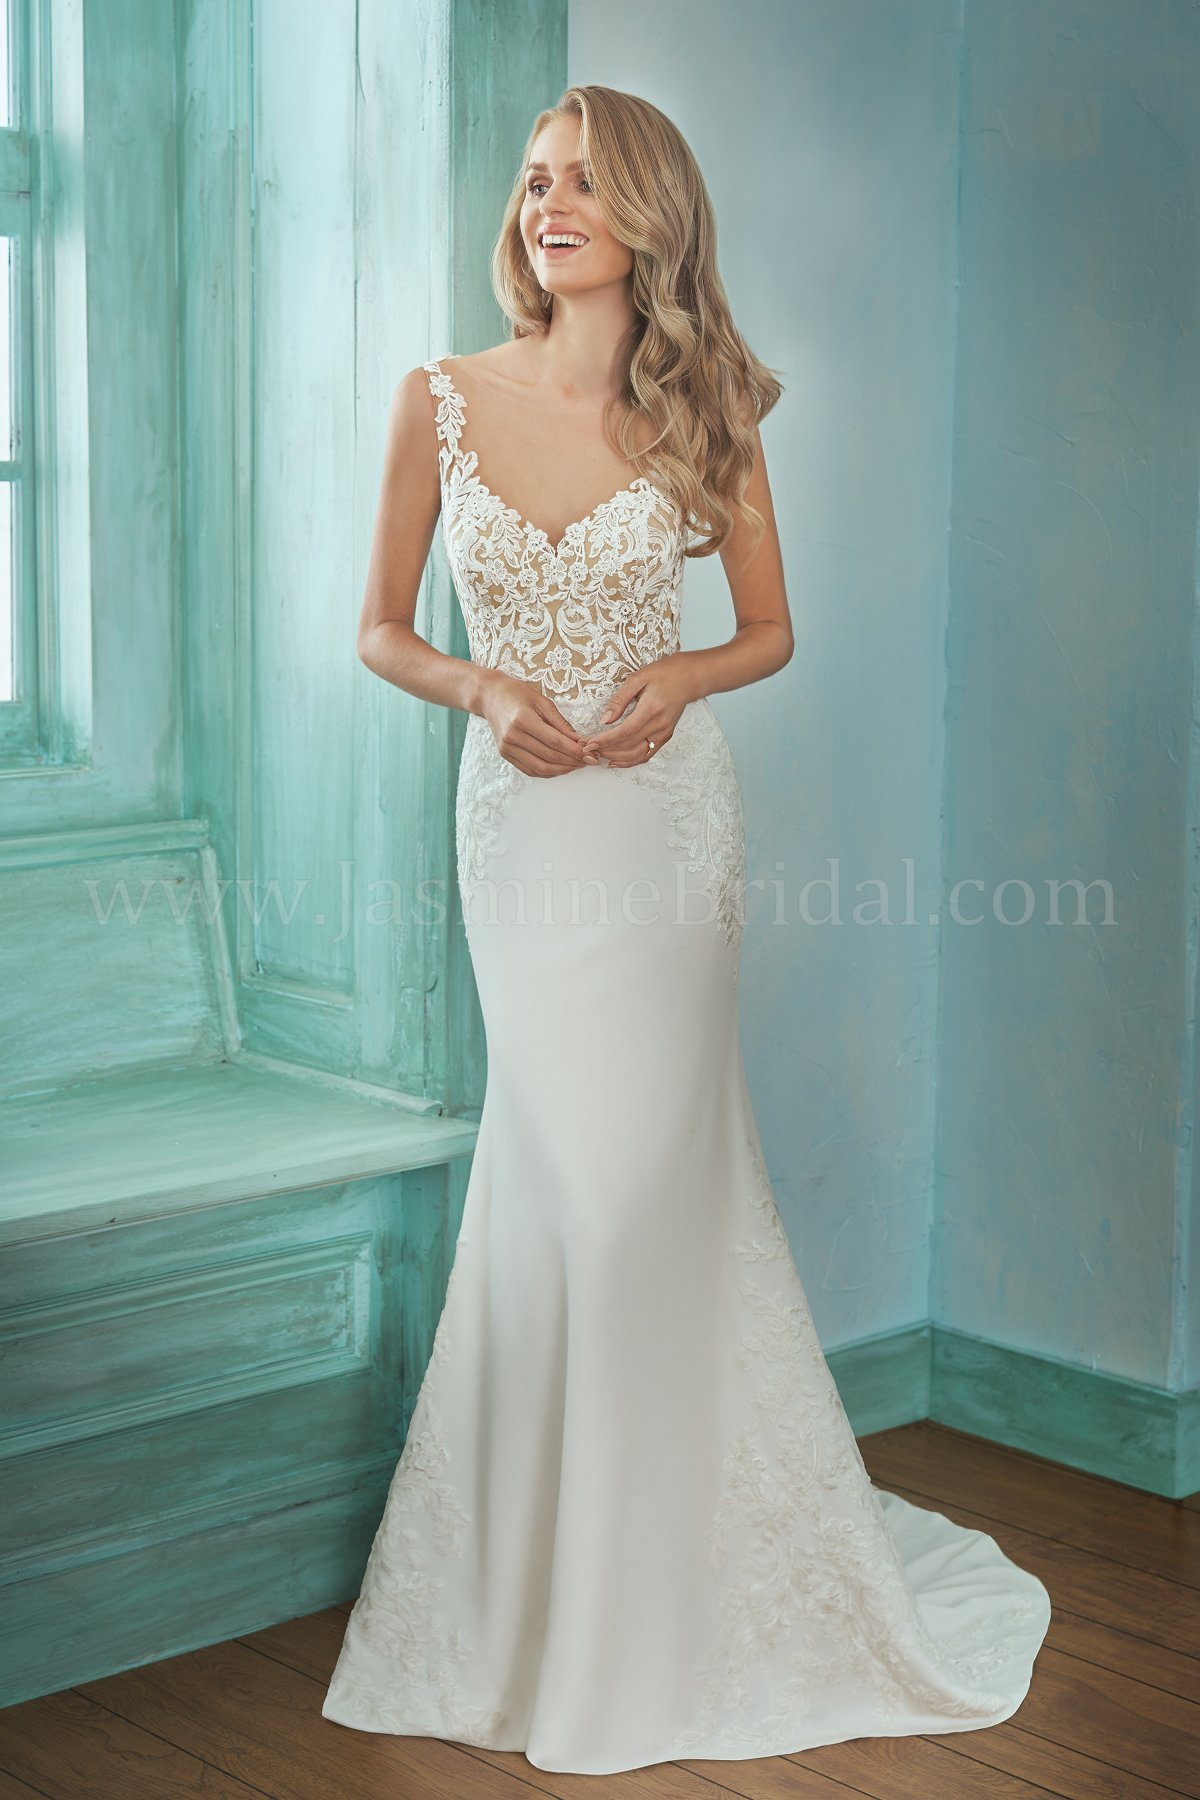 Elegant, Informal & Casual Simple Wedding Dresses-Jasmine Bridal